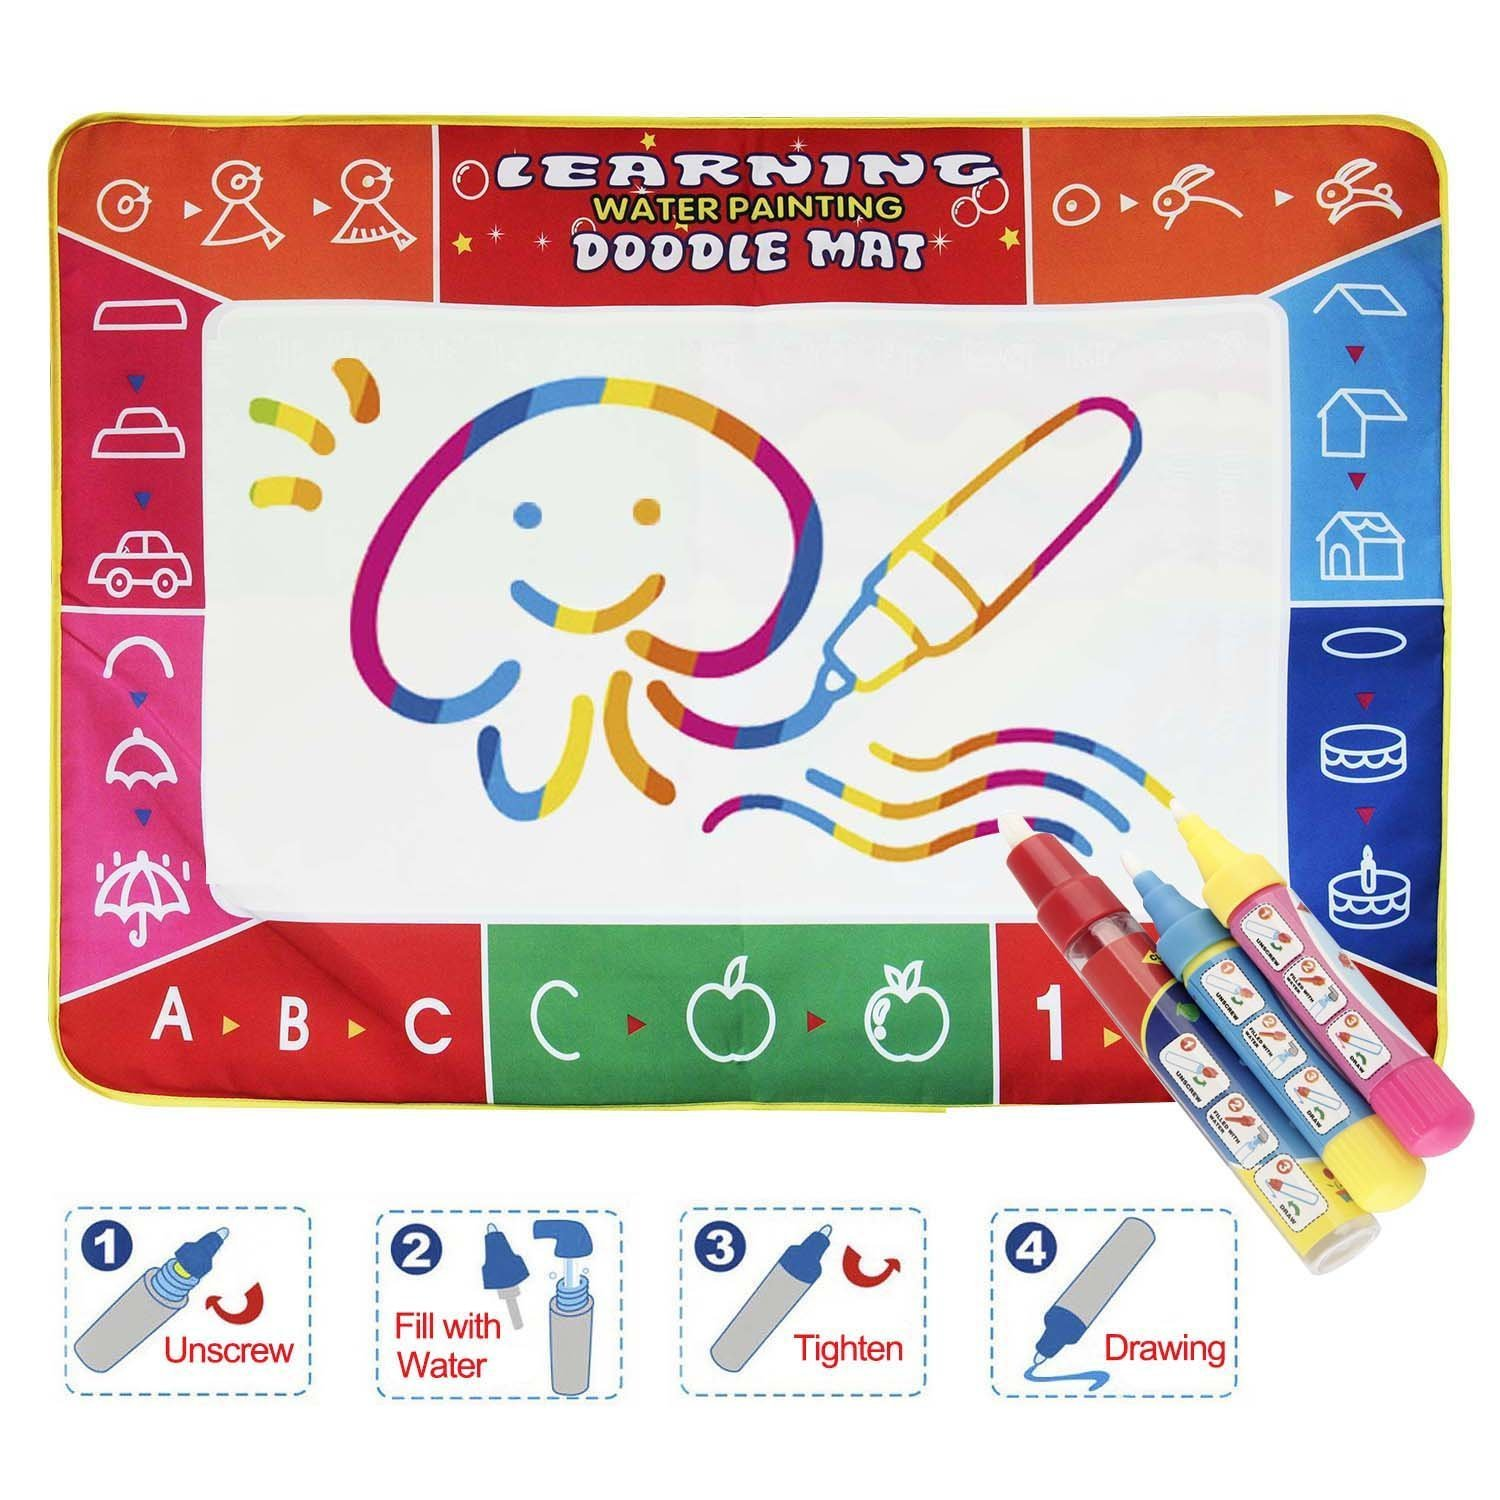 Drawing Pad Water Doodle Drawing Board Portable Educational Game for Girls Boys Reusable Ultra-Clean Washable Activity Gift Paint Magic Pen Mieeter